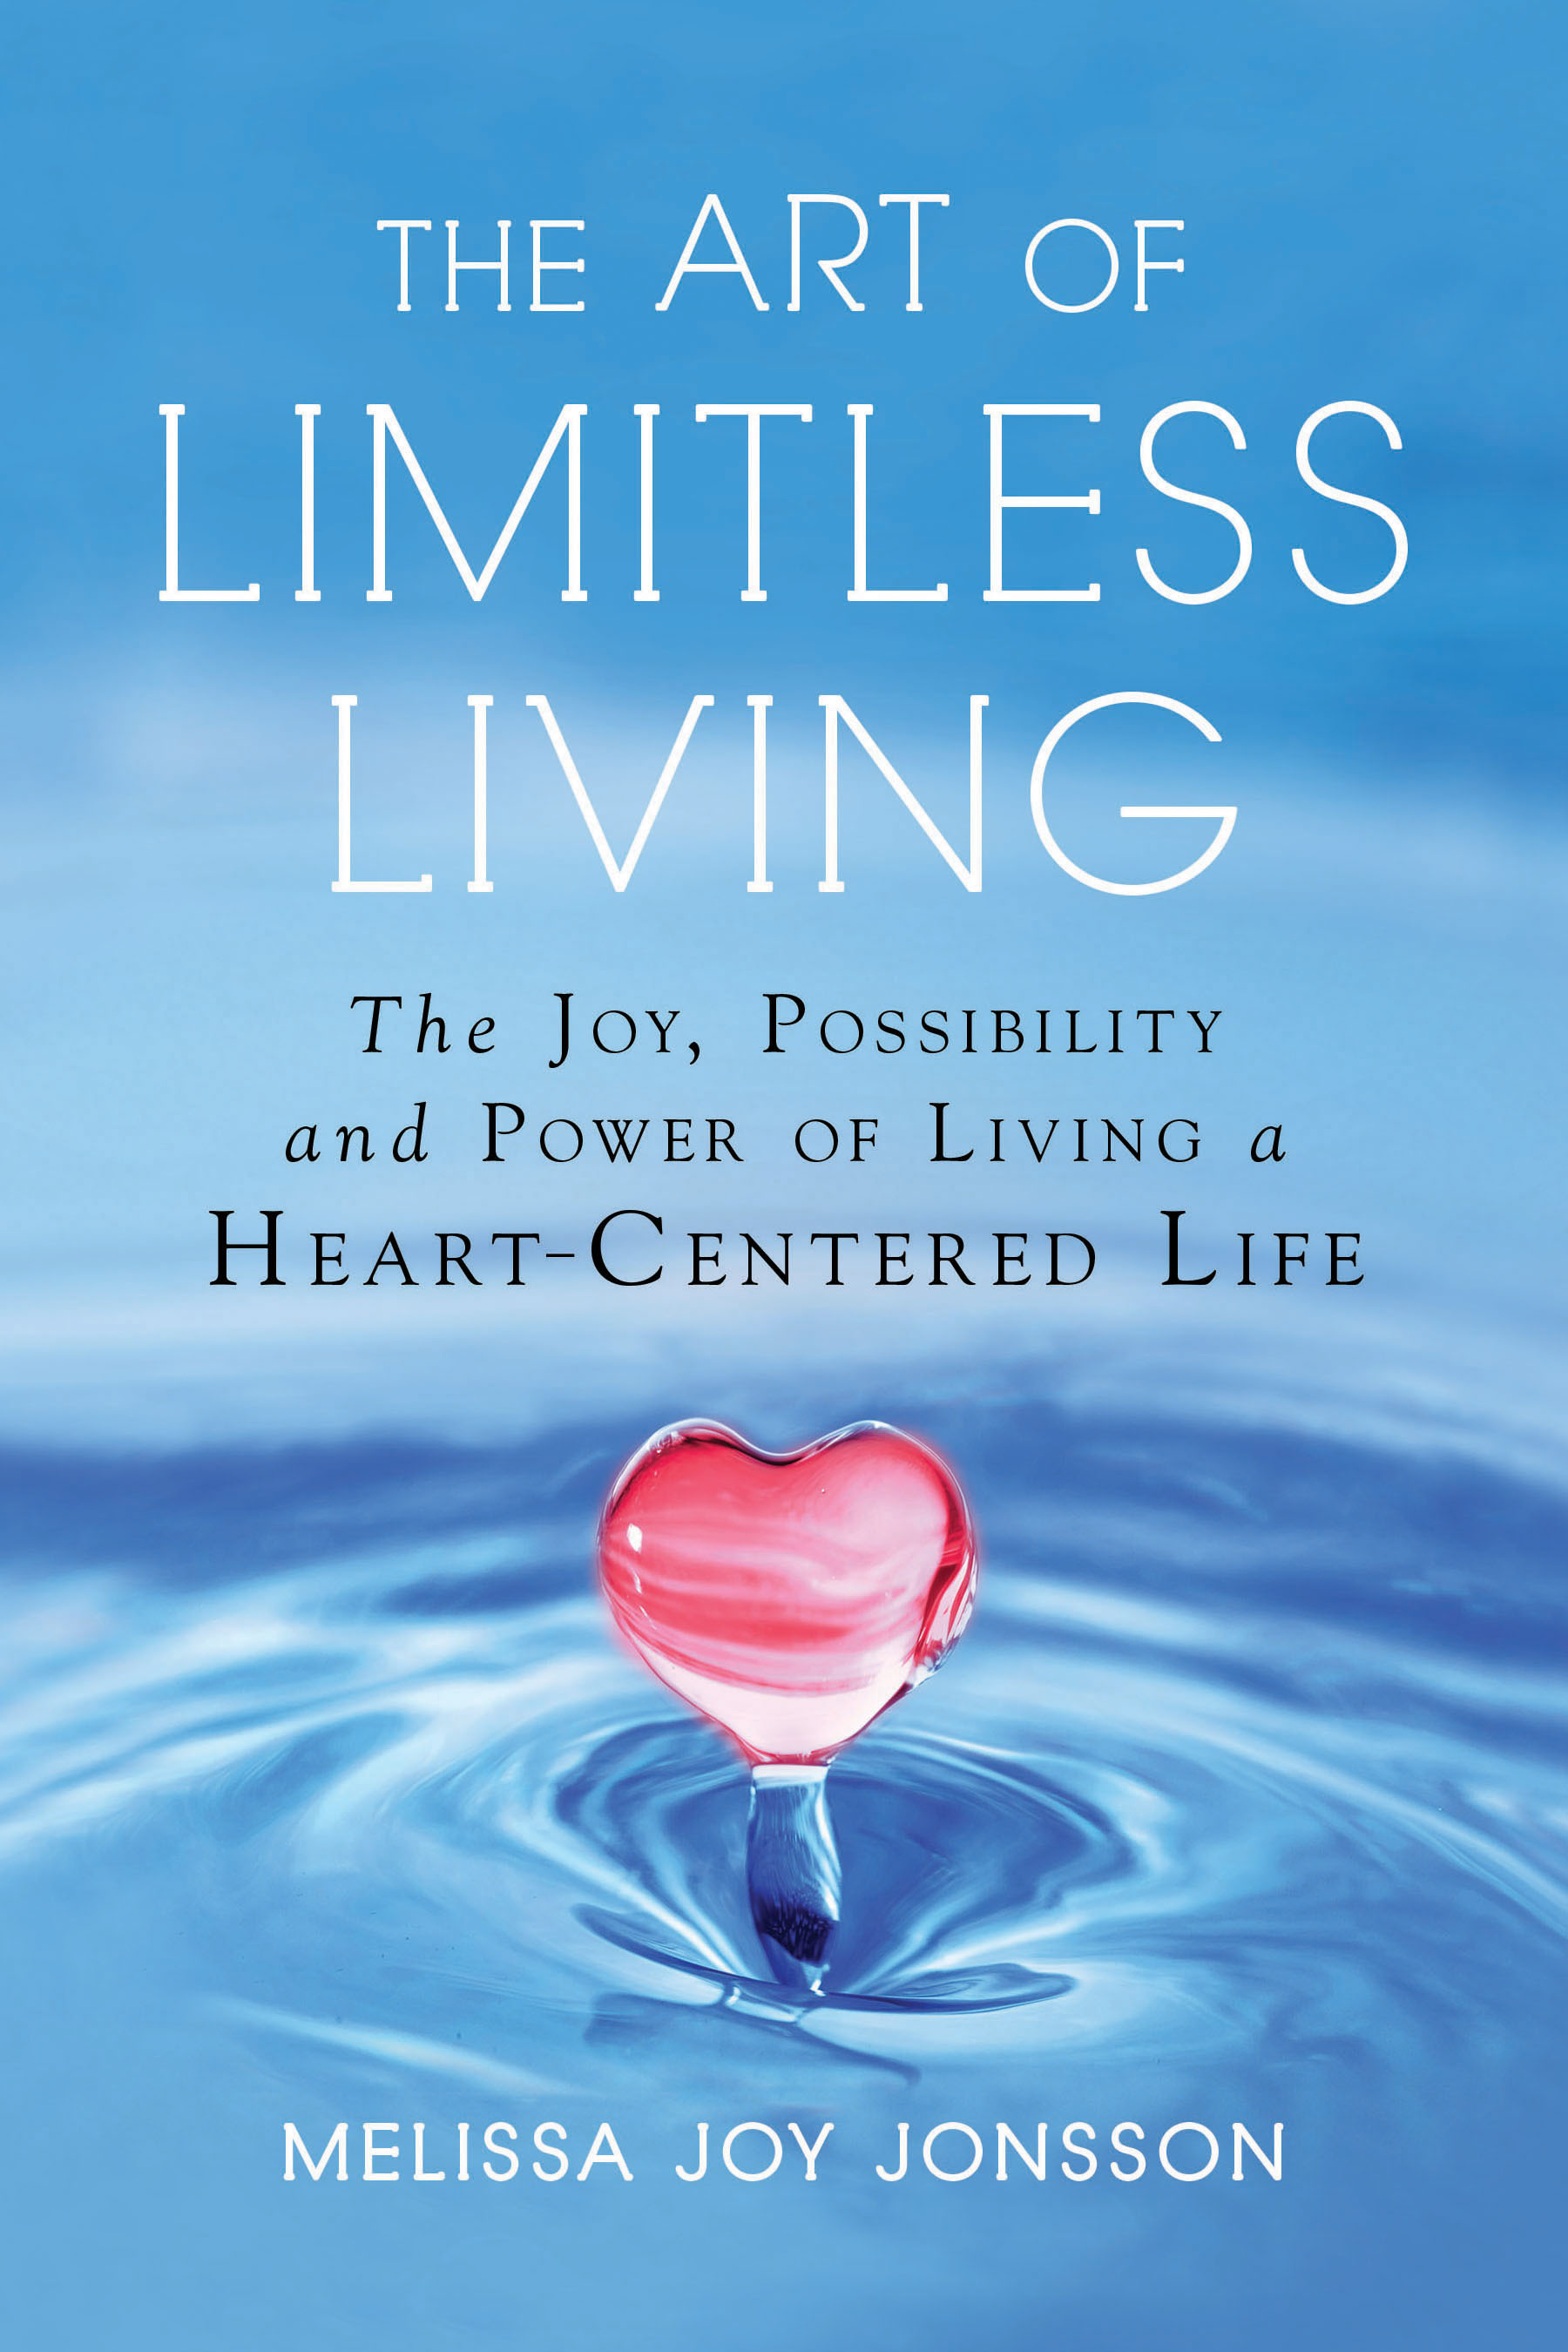 Mjoy | The Art of Limitless Living RTW Tour